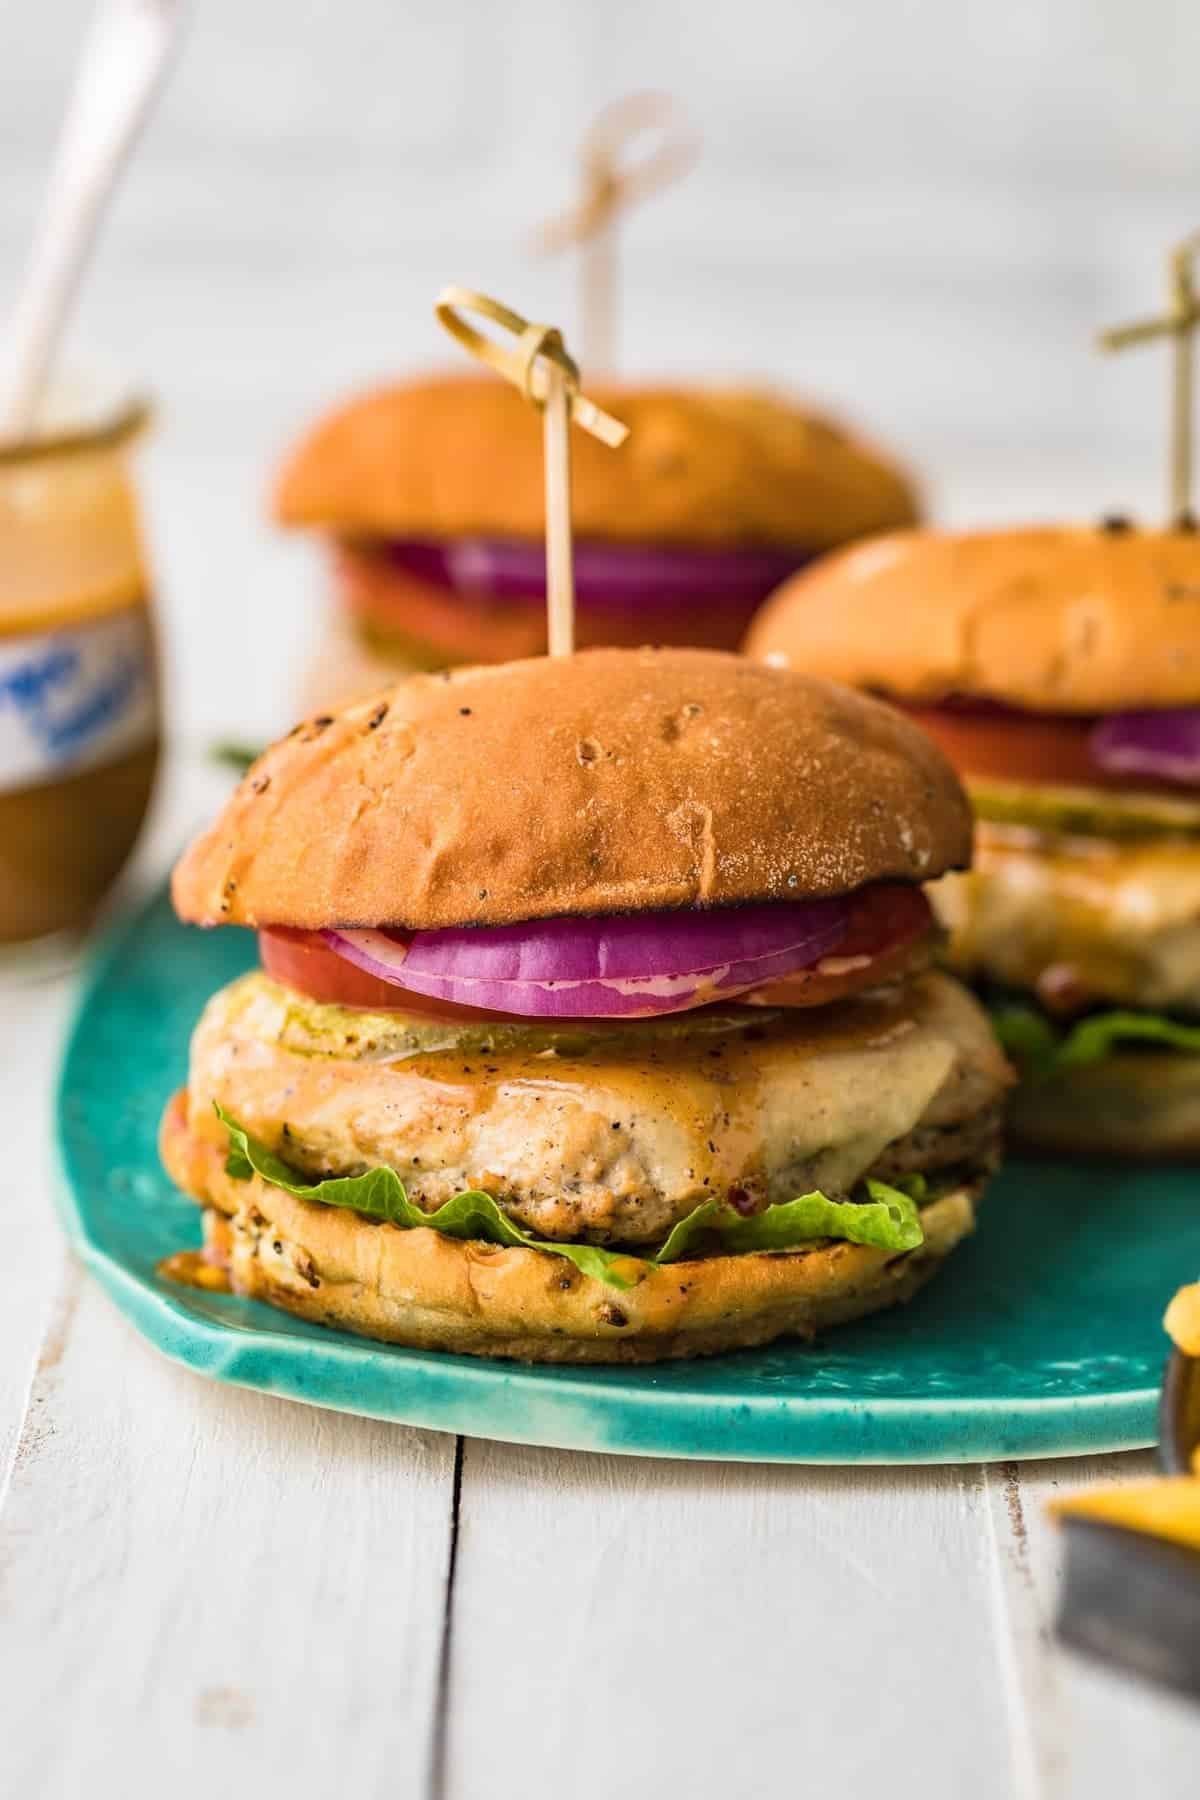 Juicy chicken burgers with toppings